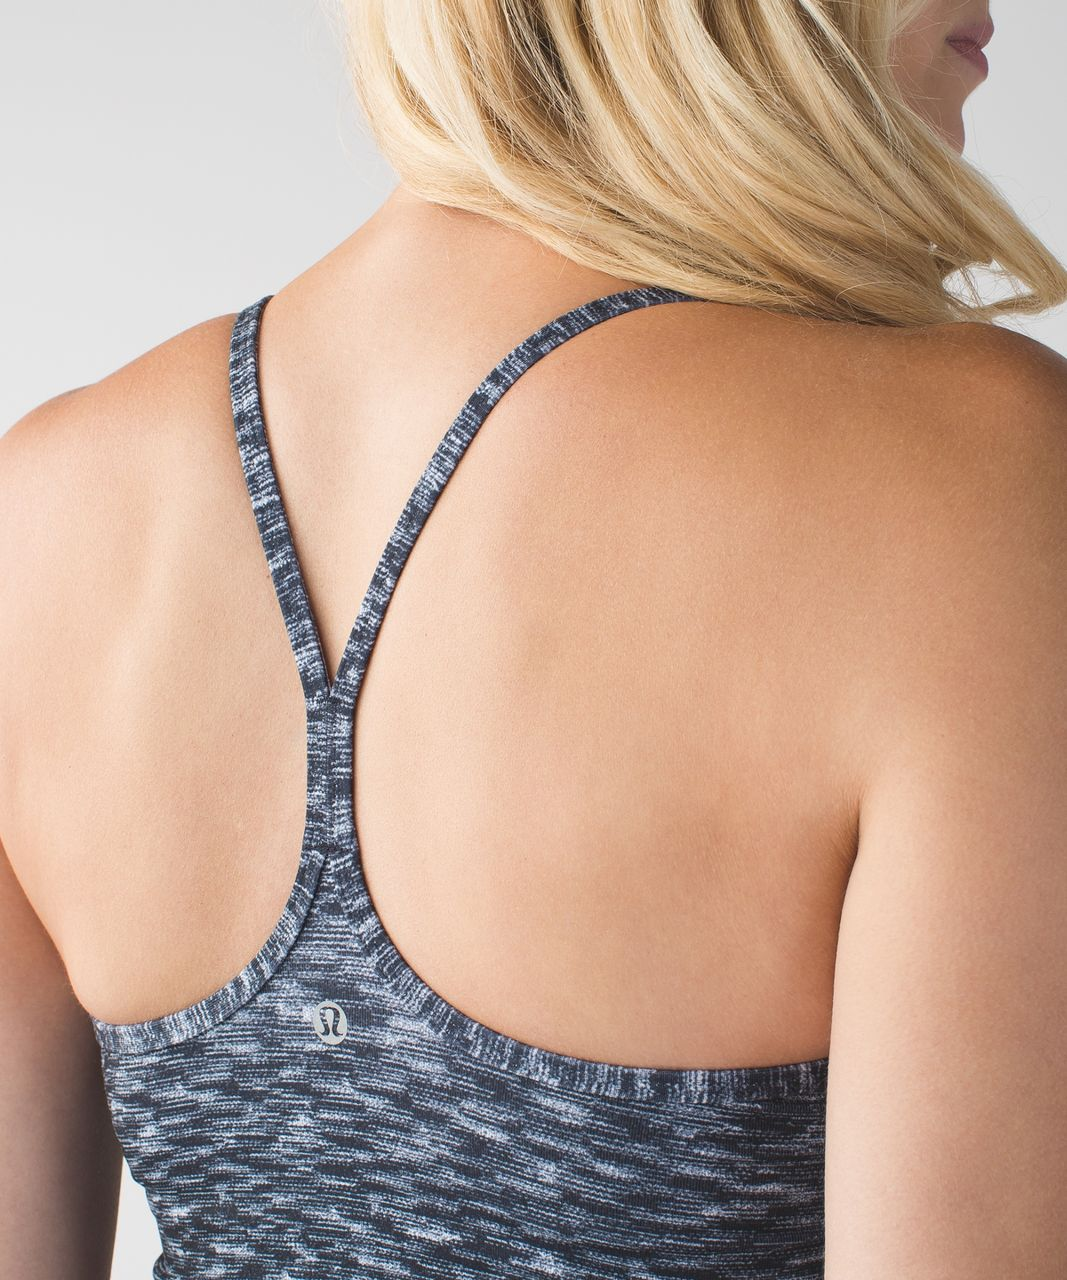 Lululemon Power Y Tank - Dramatic Static White Black